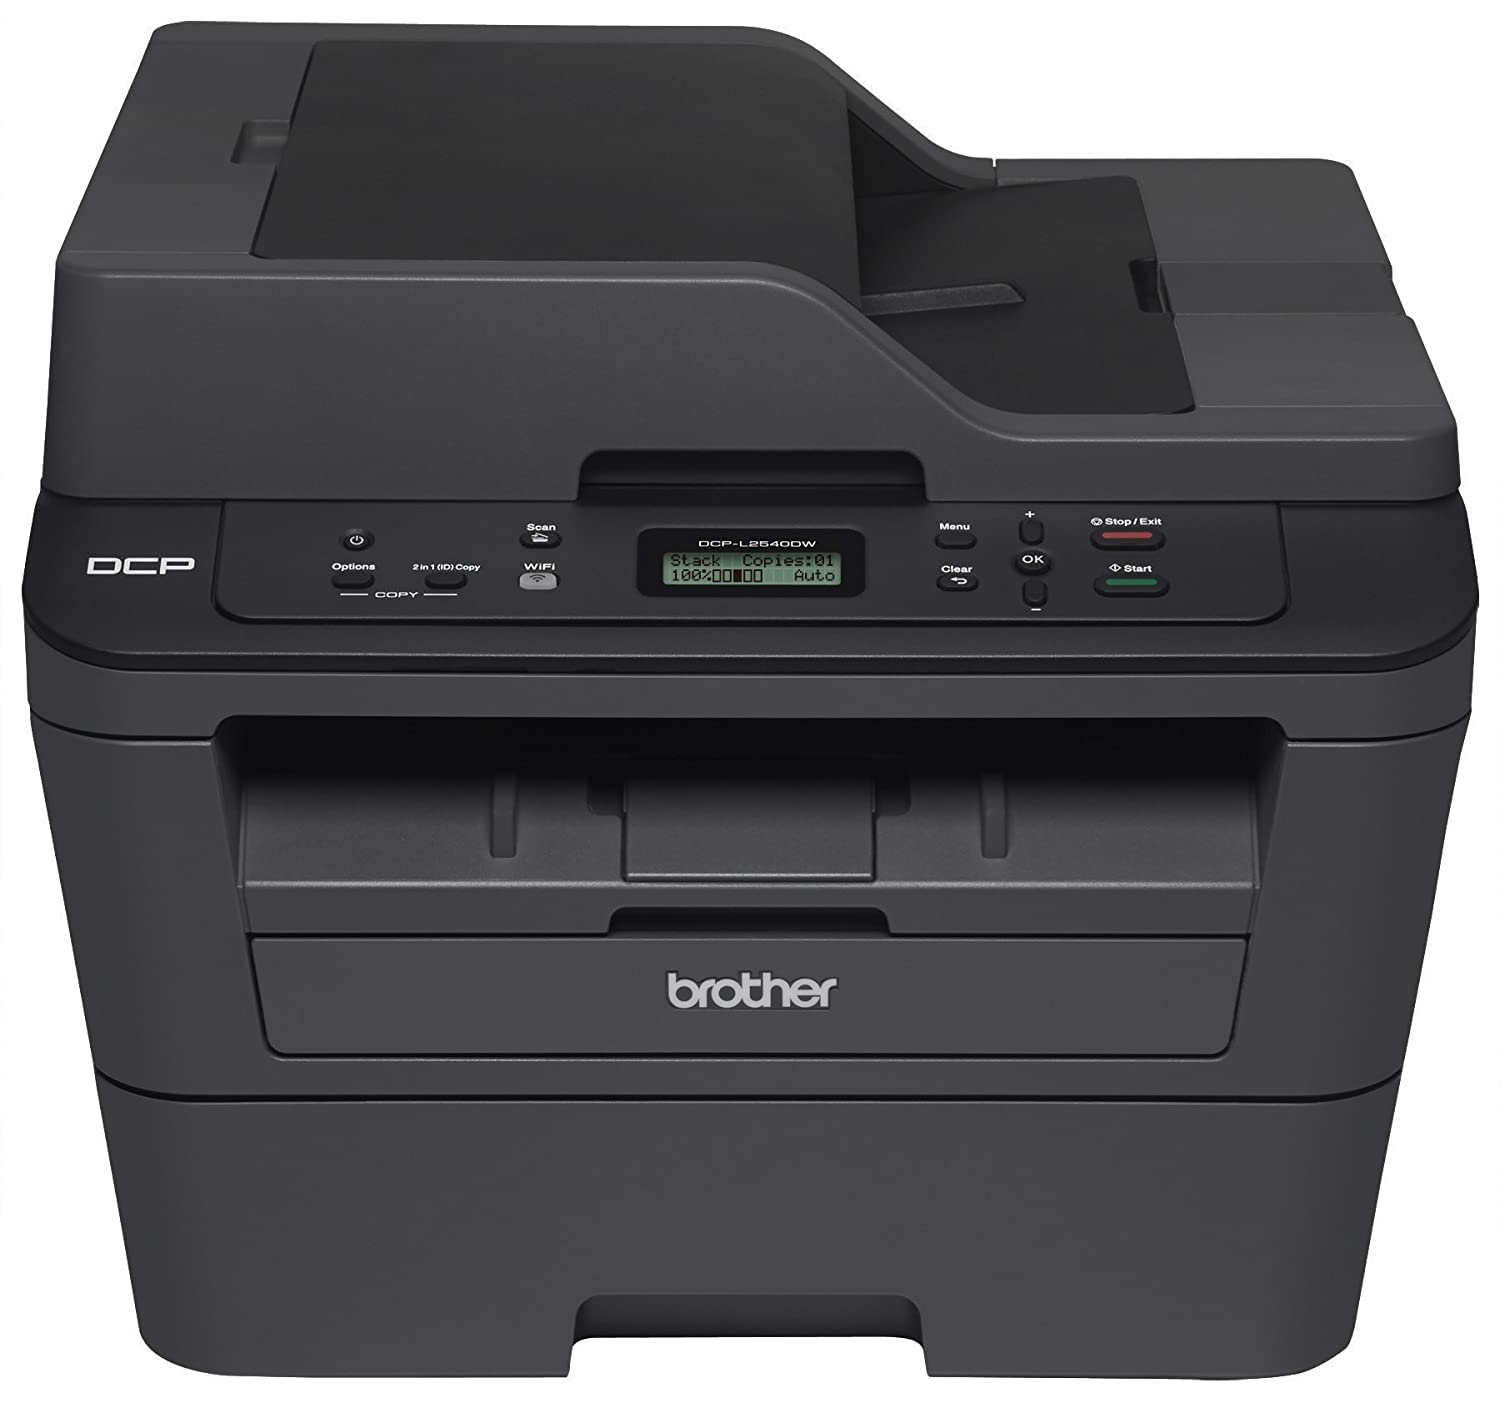 Brother DCPL2540DW Wireless Compact Laser Printer, Amazon Dash Replenishment Enabled Brother Printer